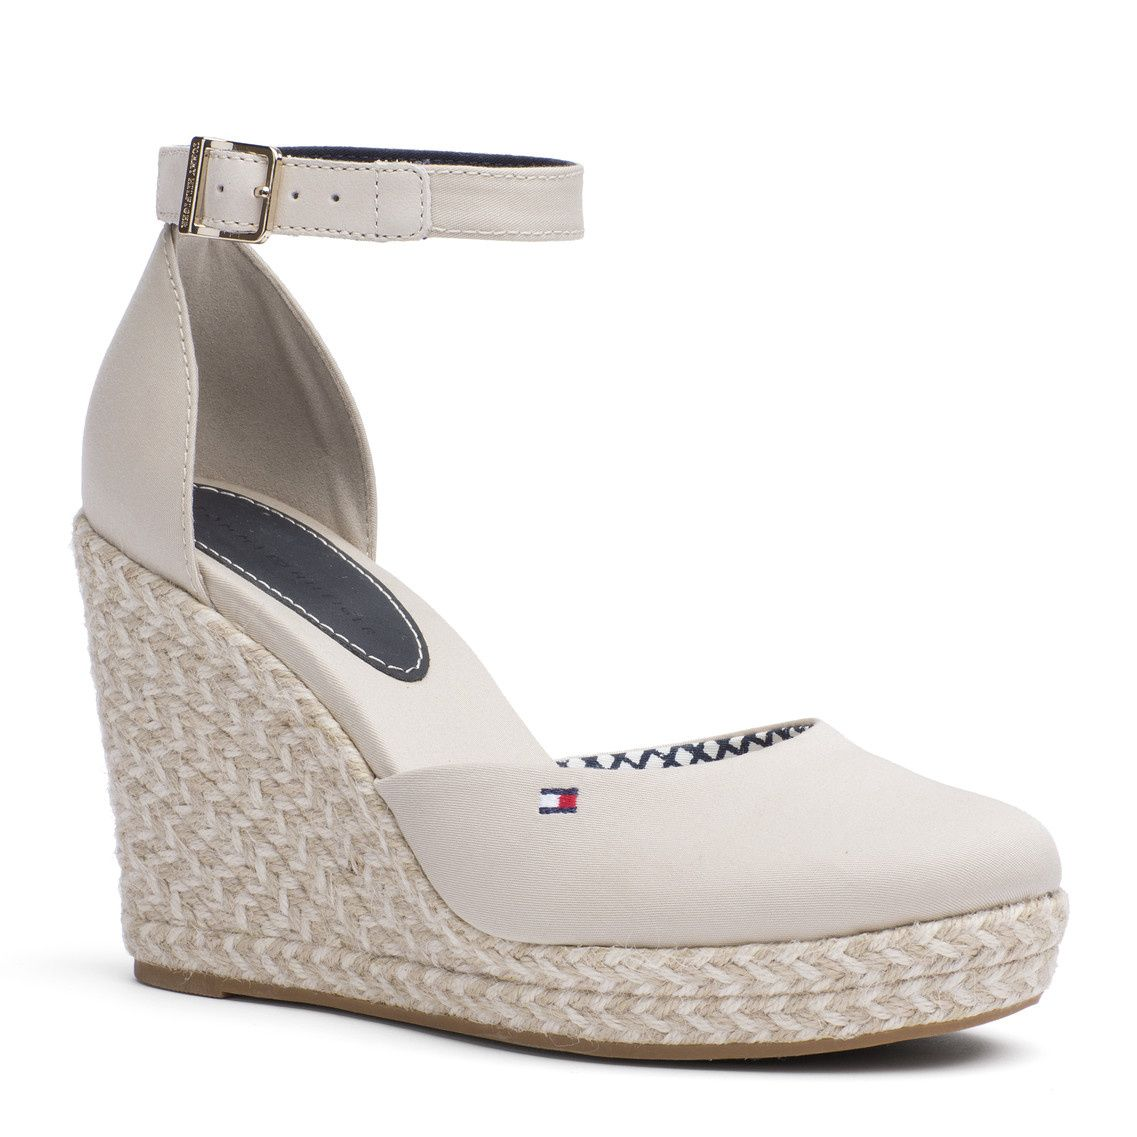 b2f9227087907 Tommy Hilfiger Emery Espadrilles - Official Tommy Hilfiger® Store ...